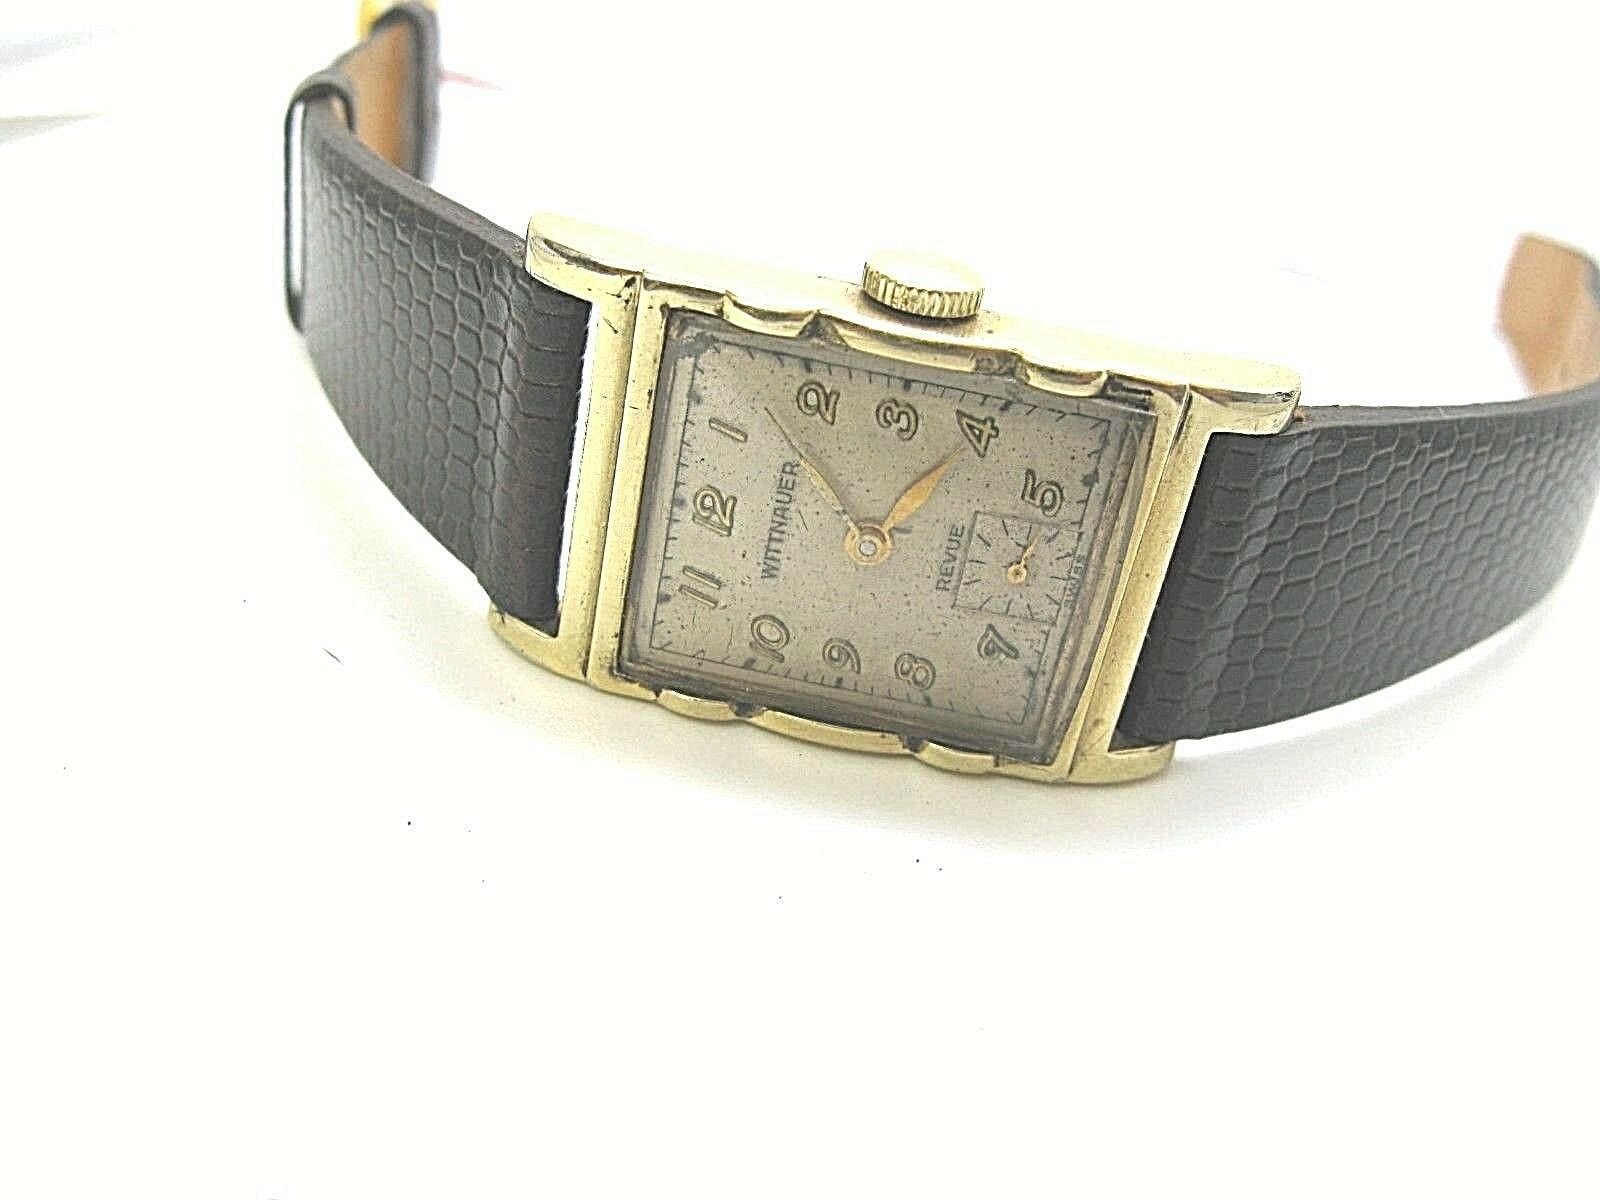 WITTNAUER LONGINE VINTAGE WATCH REVUE 1950'S 10K GF serviced image 2